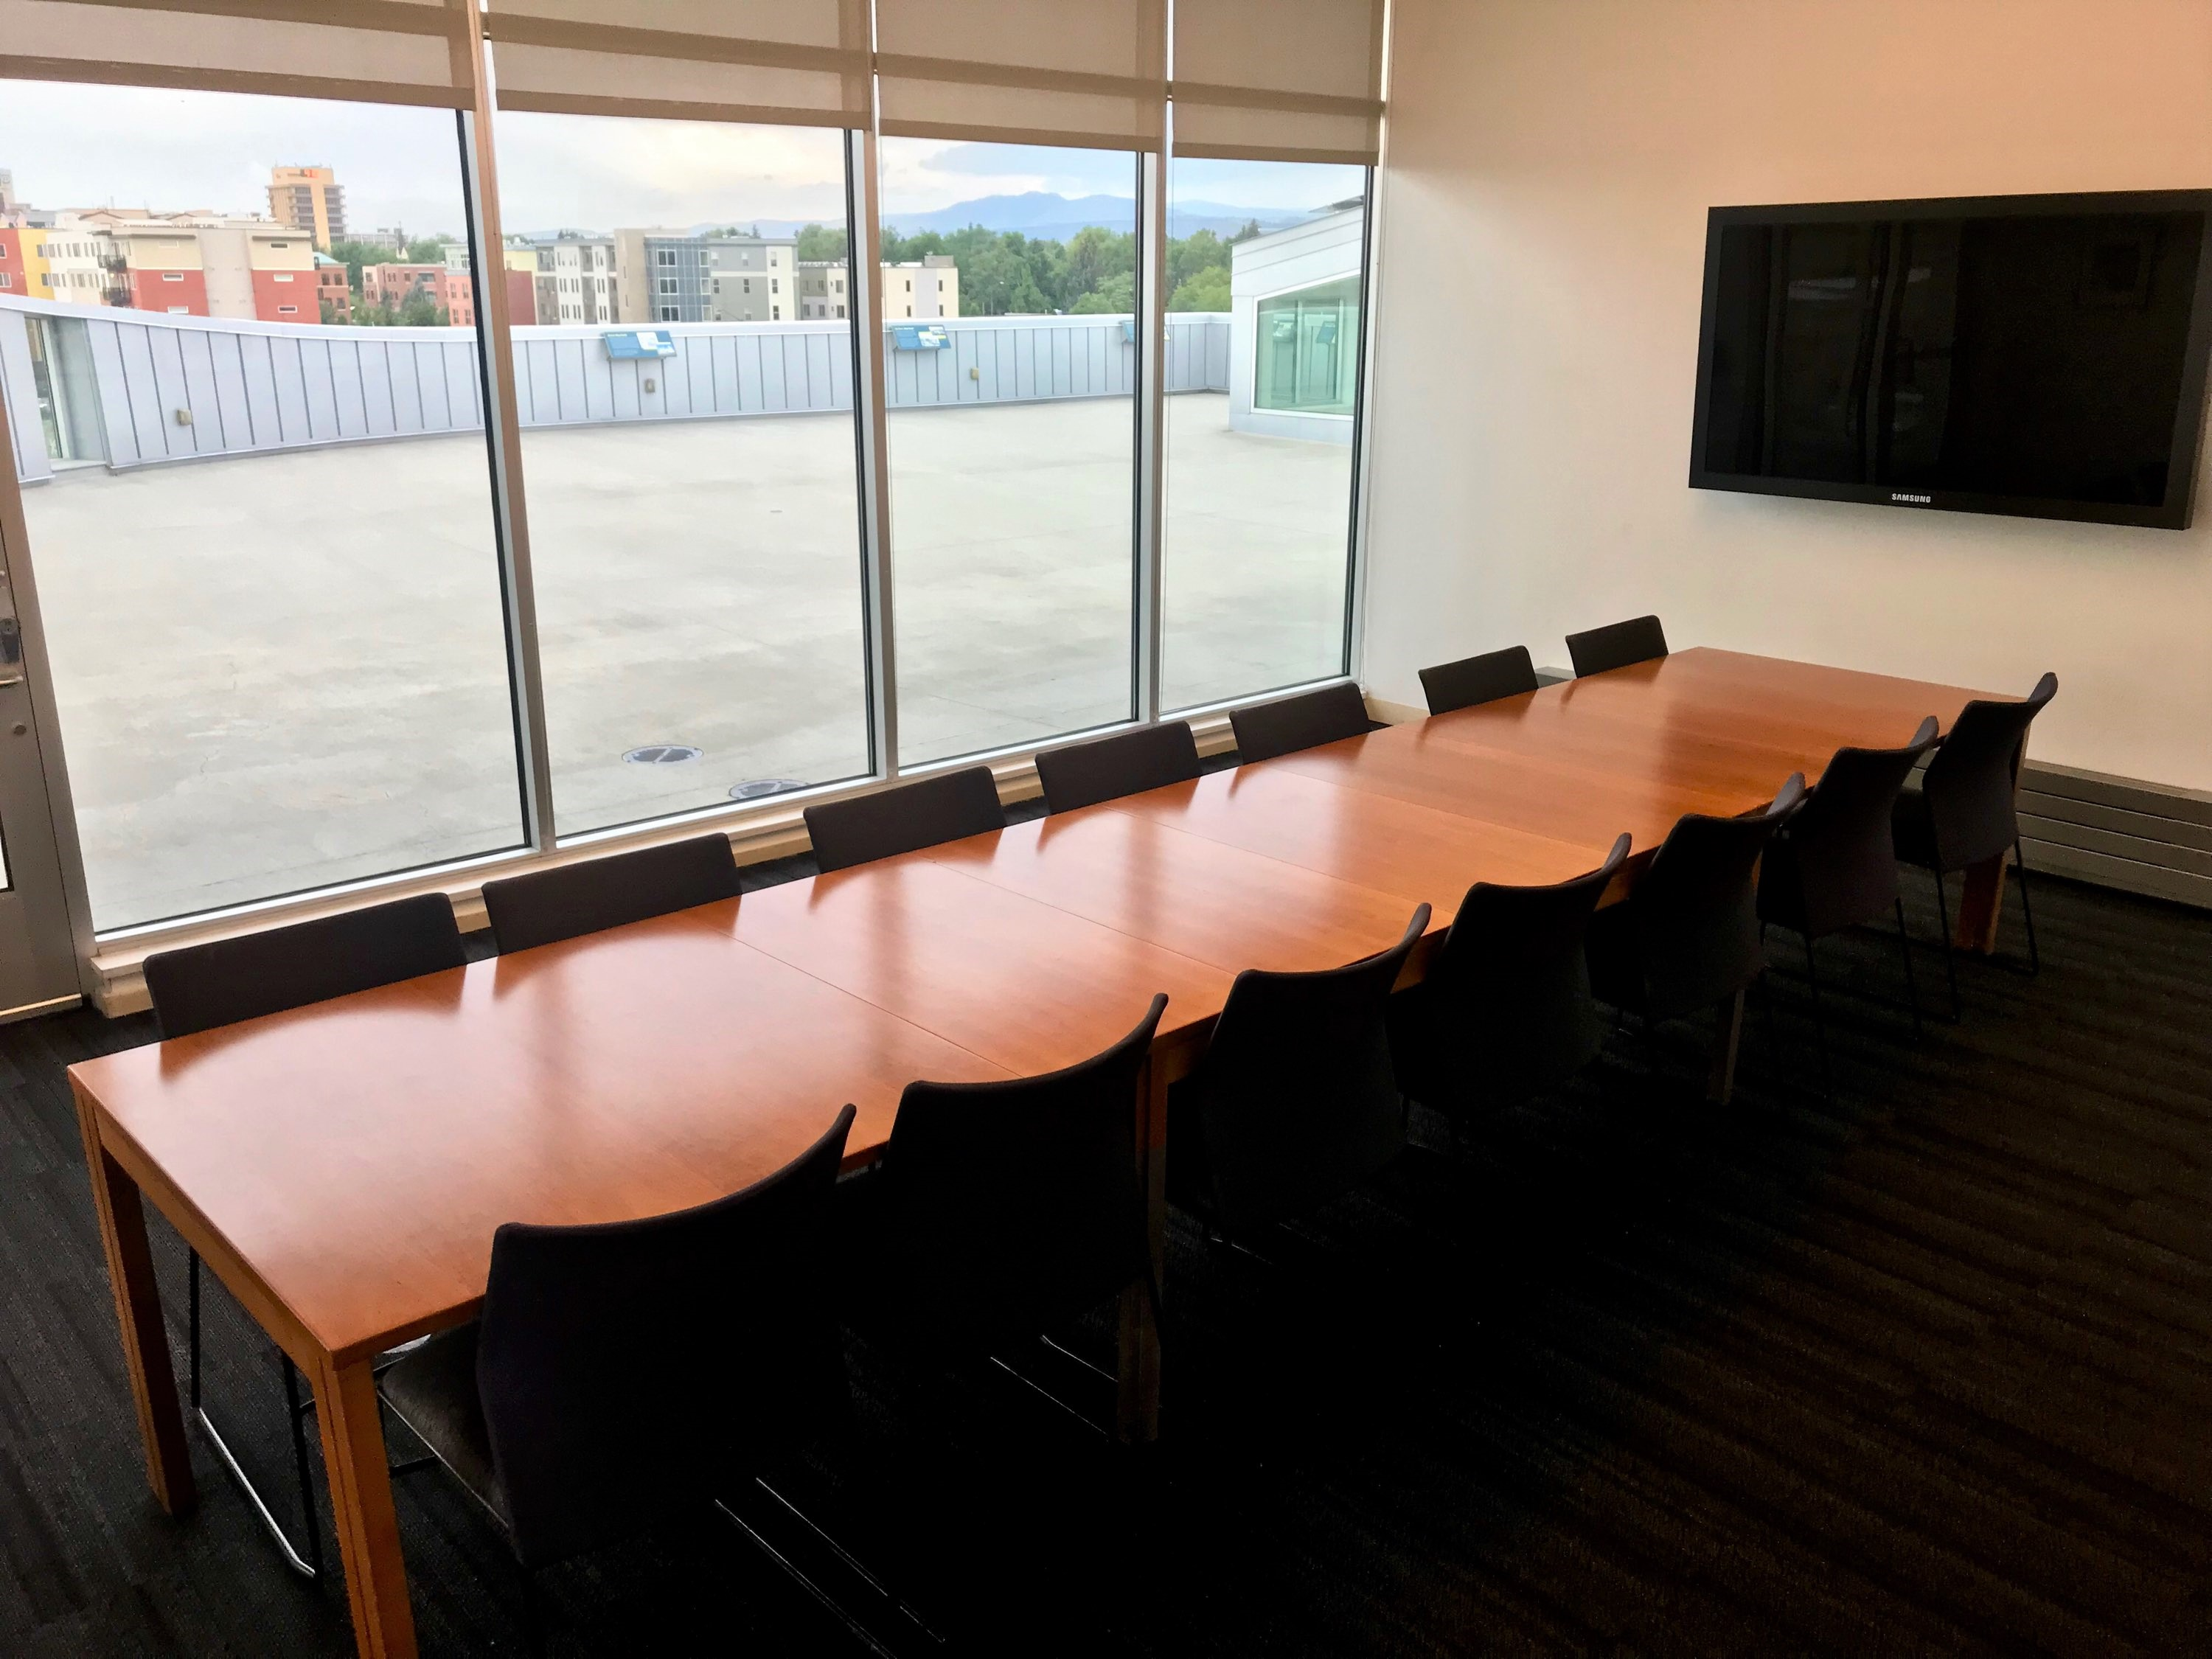 View of the Markley room showing a boardroom setup and view facing south over the rooftop.